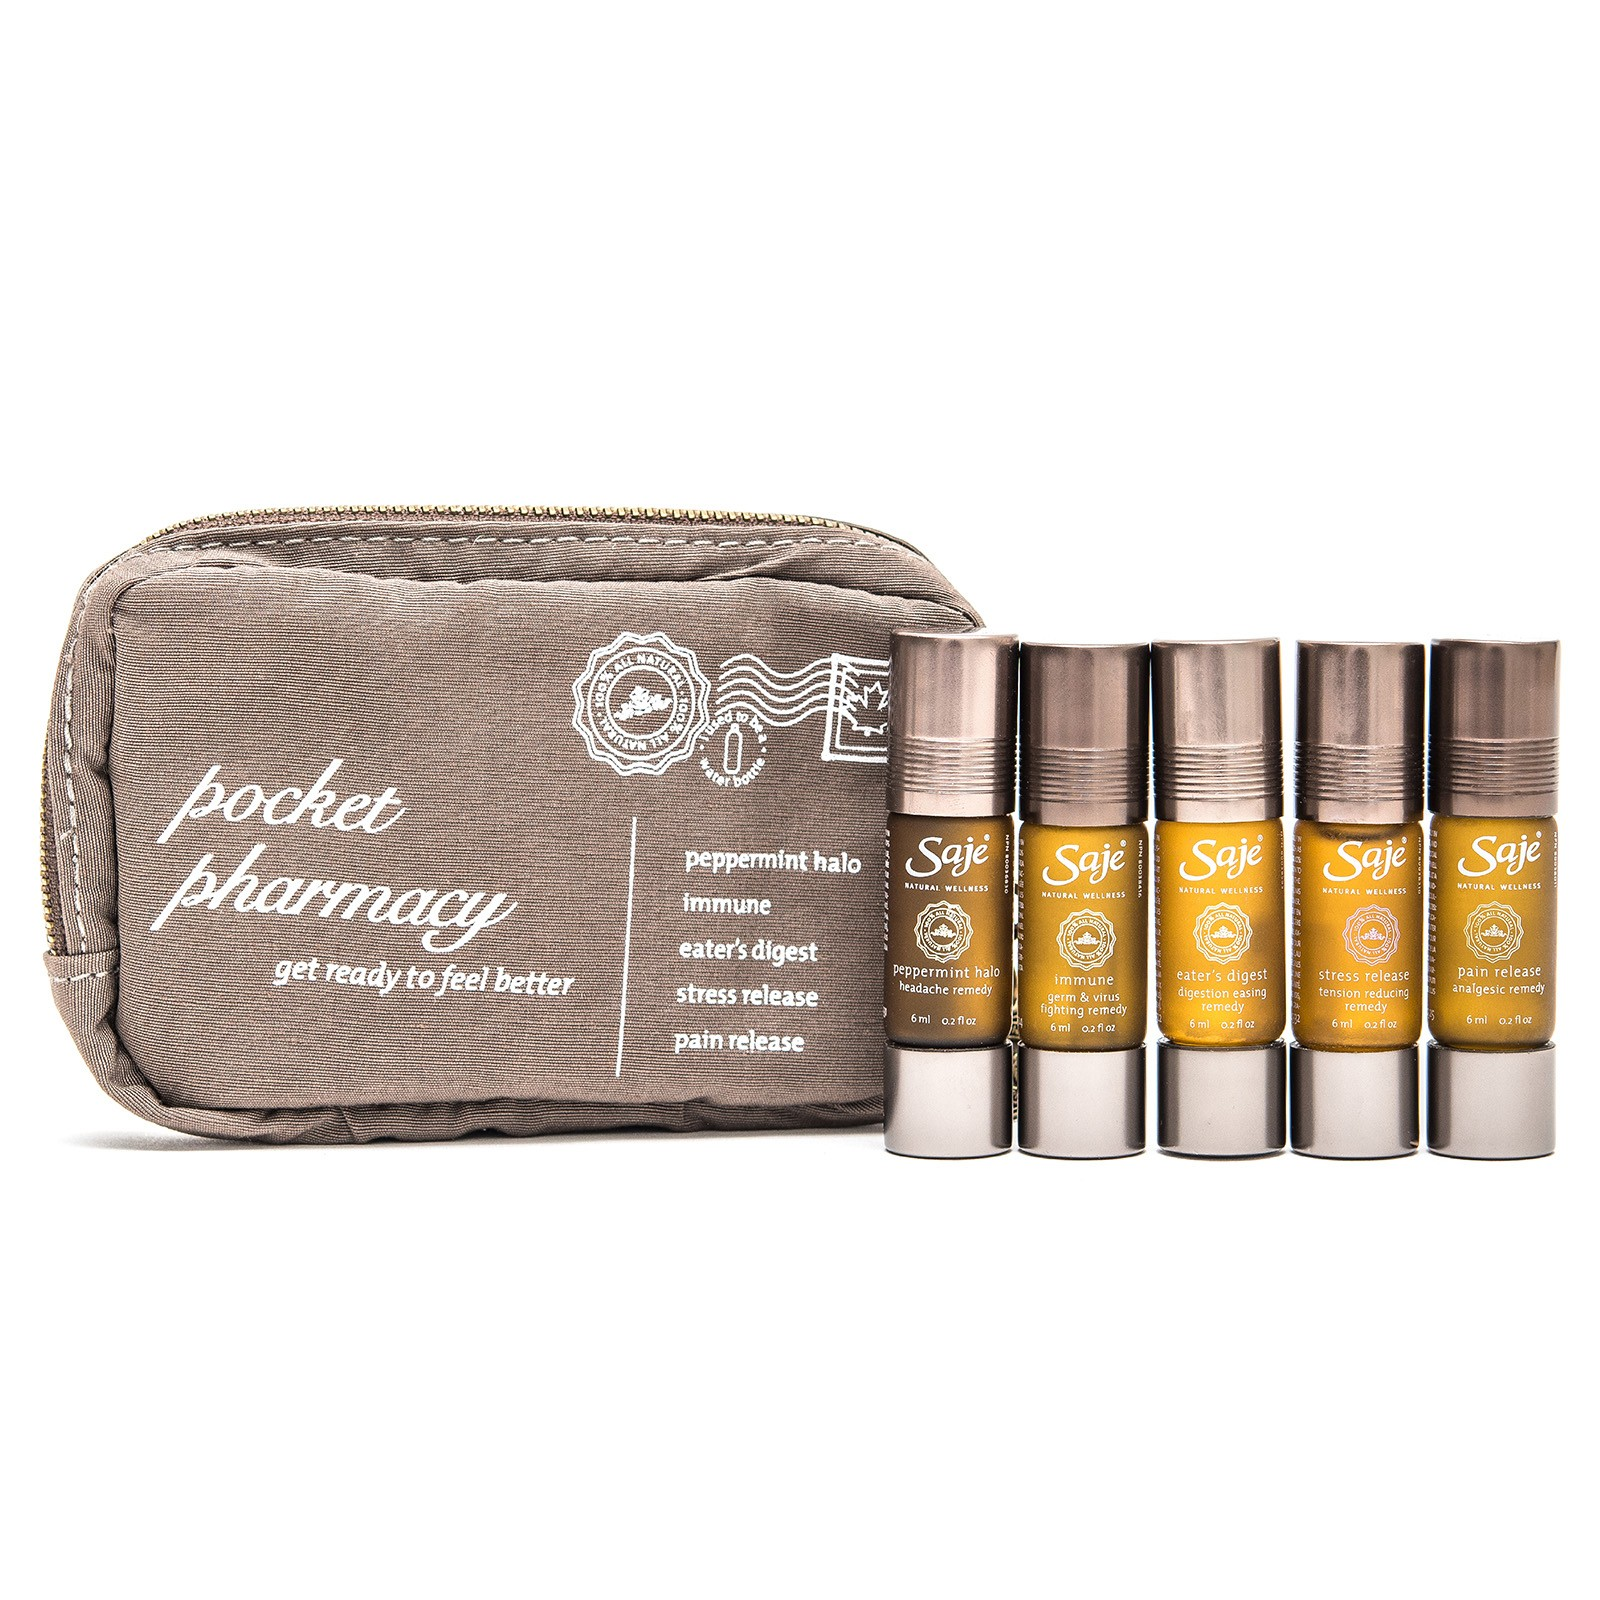 Portable aromatherapy to soothe what ails you by Saje Natural Wellness